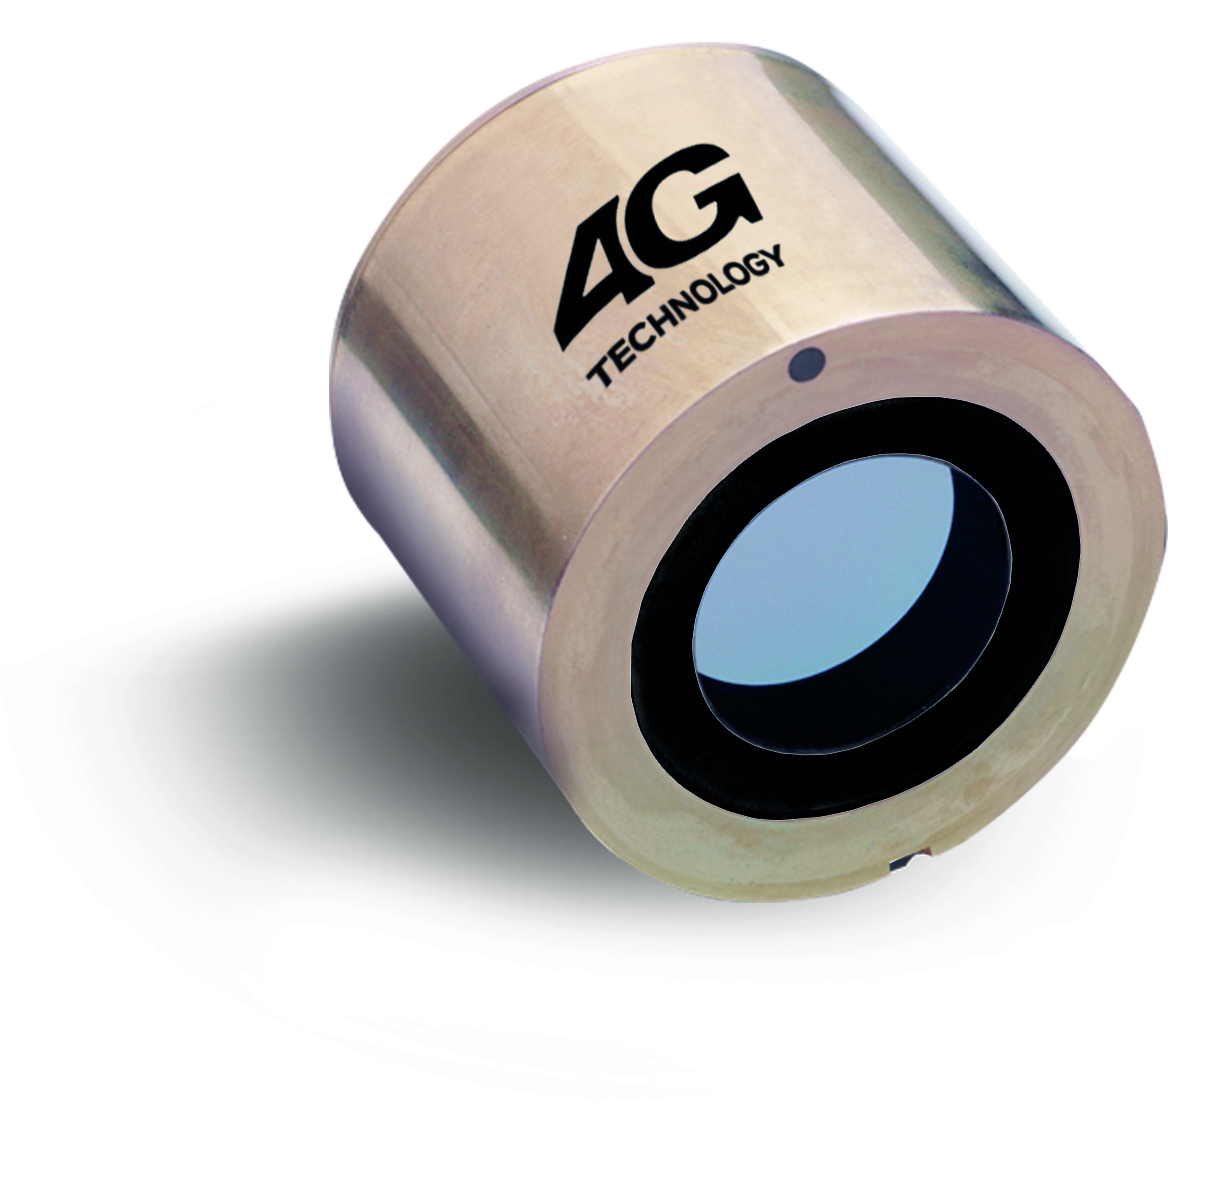 4G image intensifier Tube